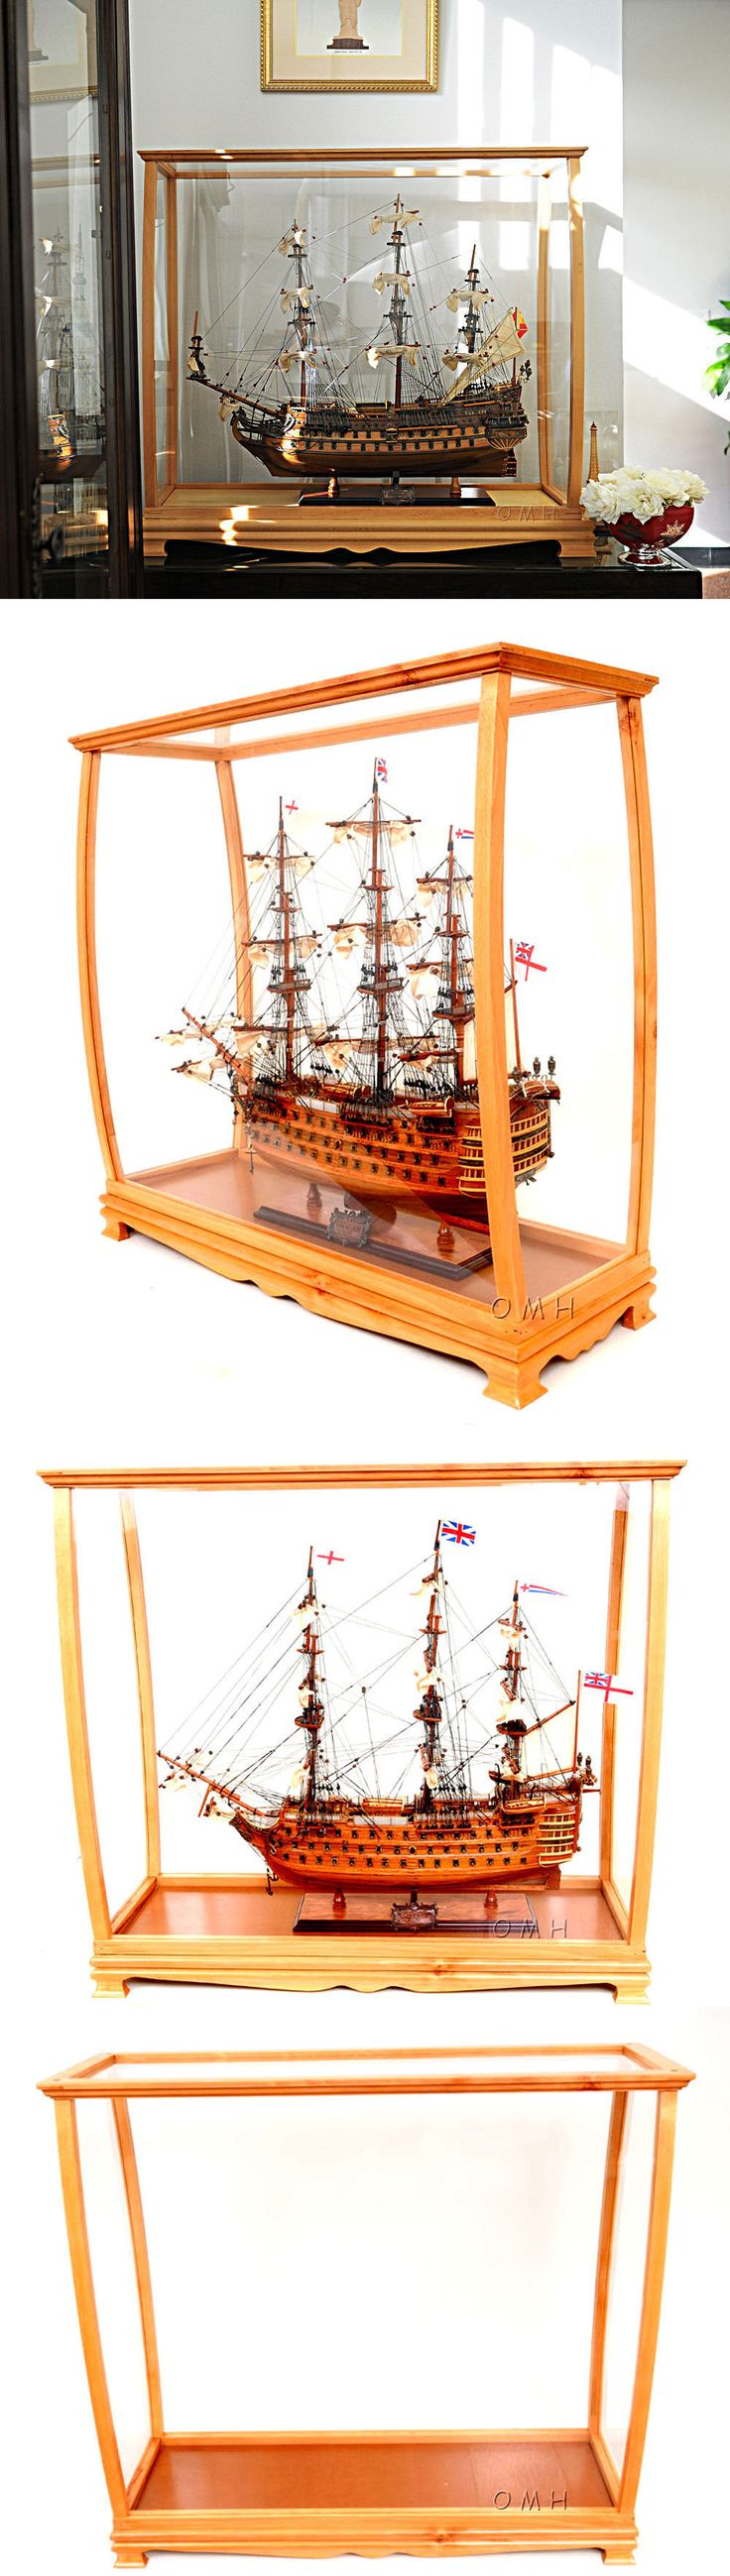 Display Cases and Stands 171135: Ship Model Display Case 36 Wood And Plexiglass Cabinet For Midsize Tall Ship -> BUY IT NOW ONLY: $489 on eBay!